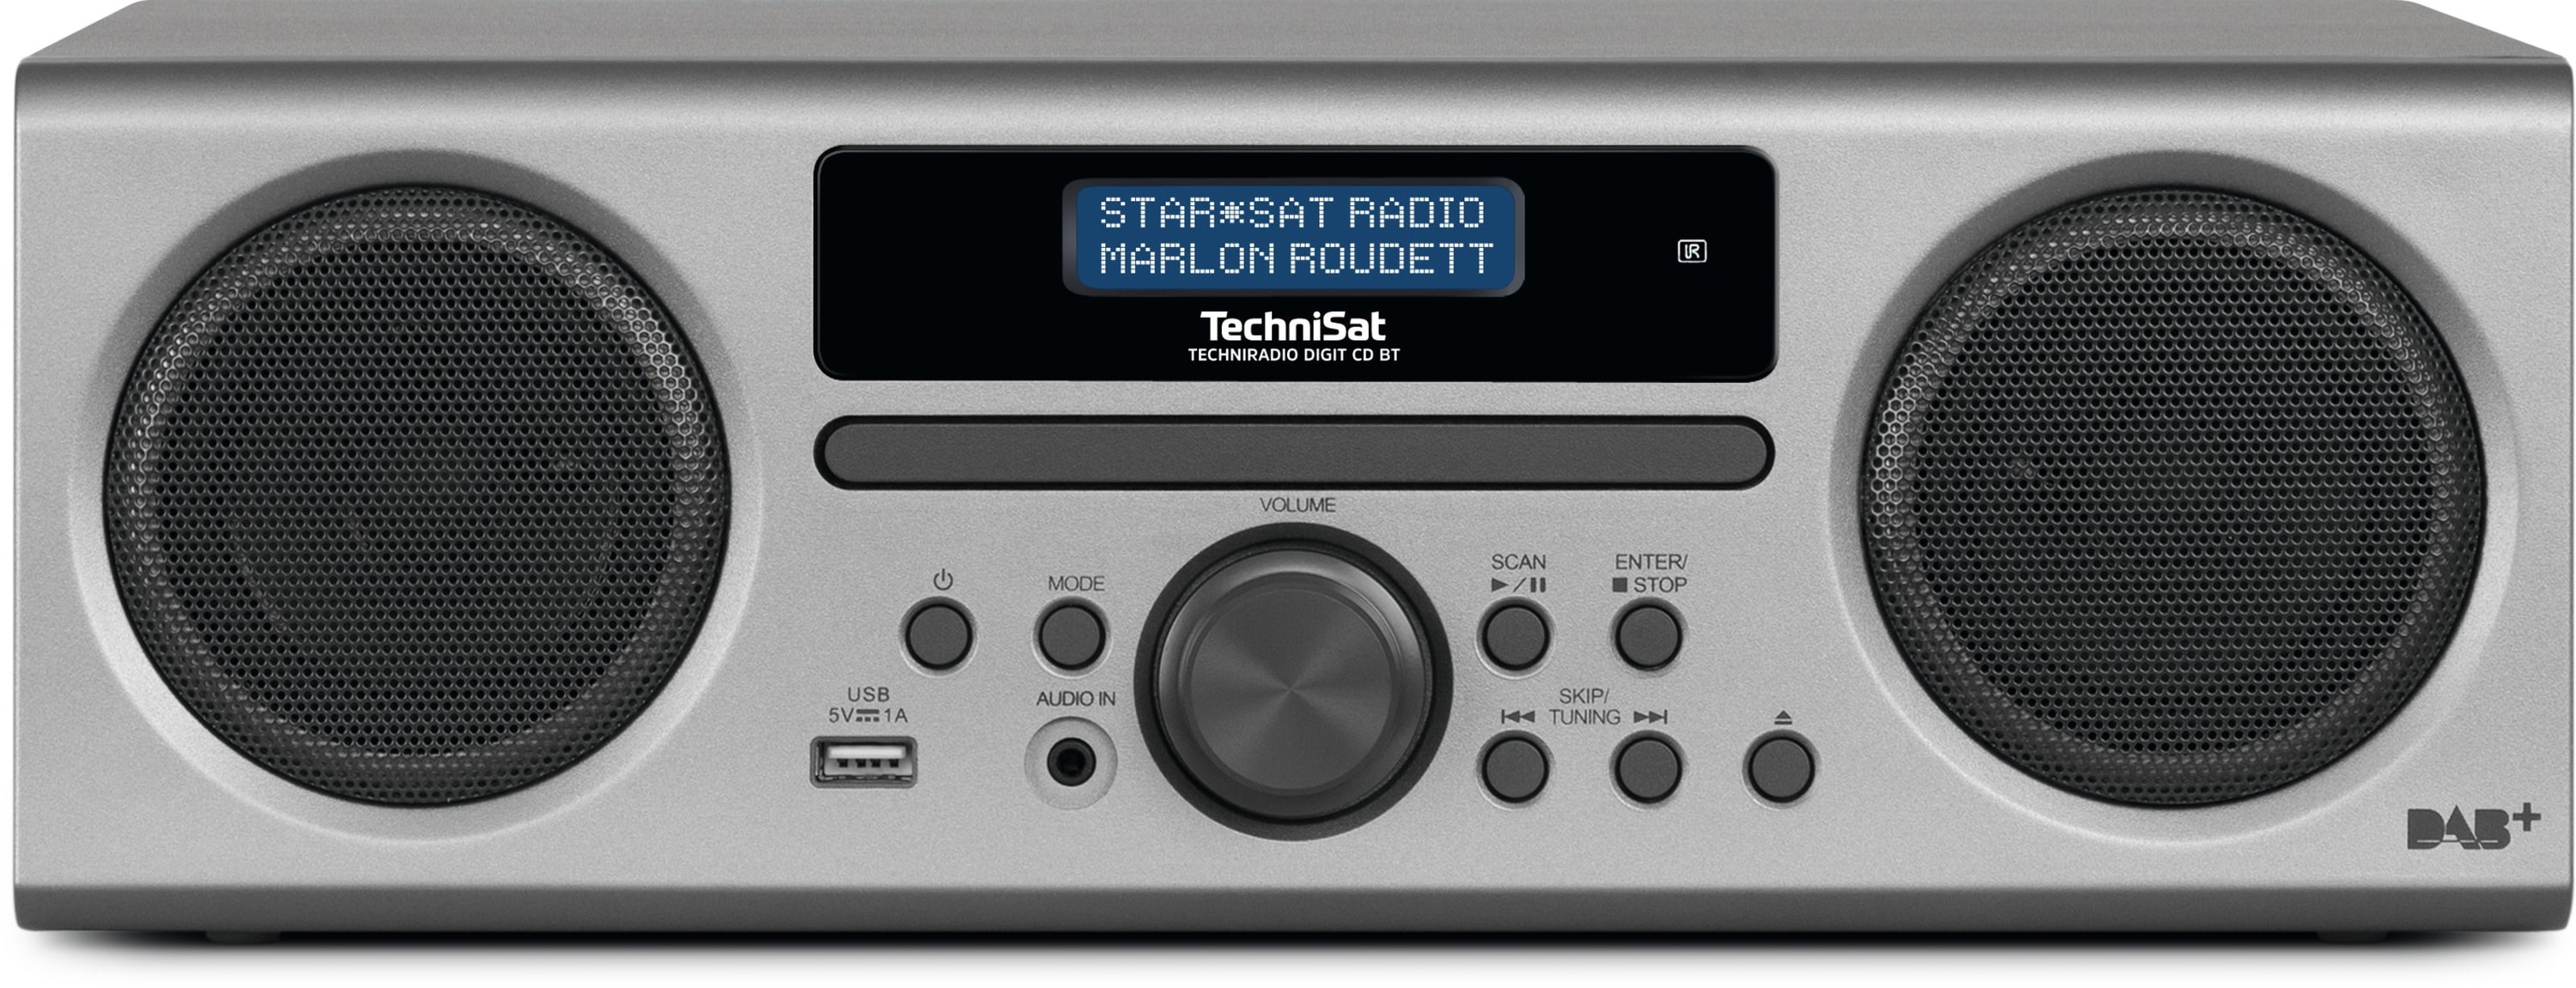 TechniSat TECHNIRADIO DIGIT CD BT DAB+/UKW Stereo-Radio 10W Bluetooth für 129,00 Euro